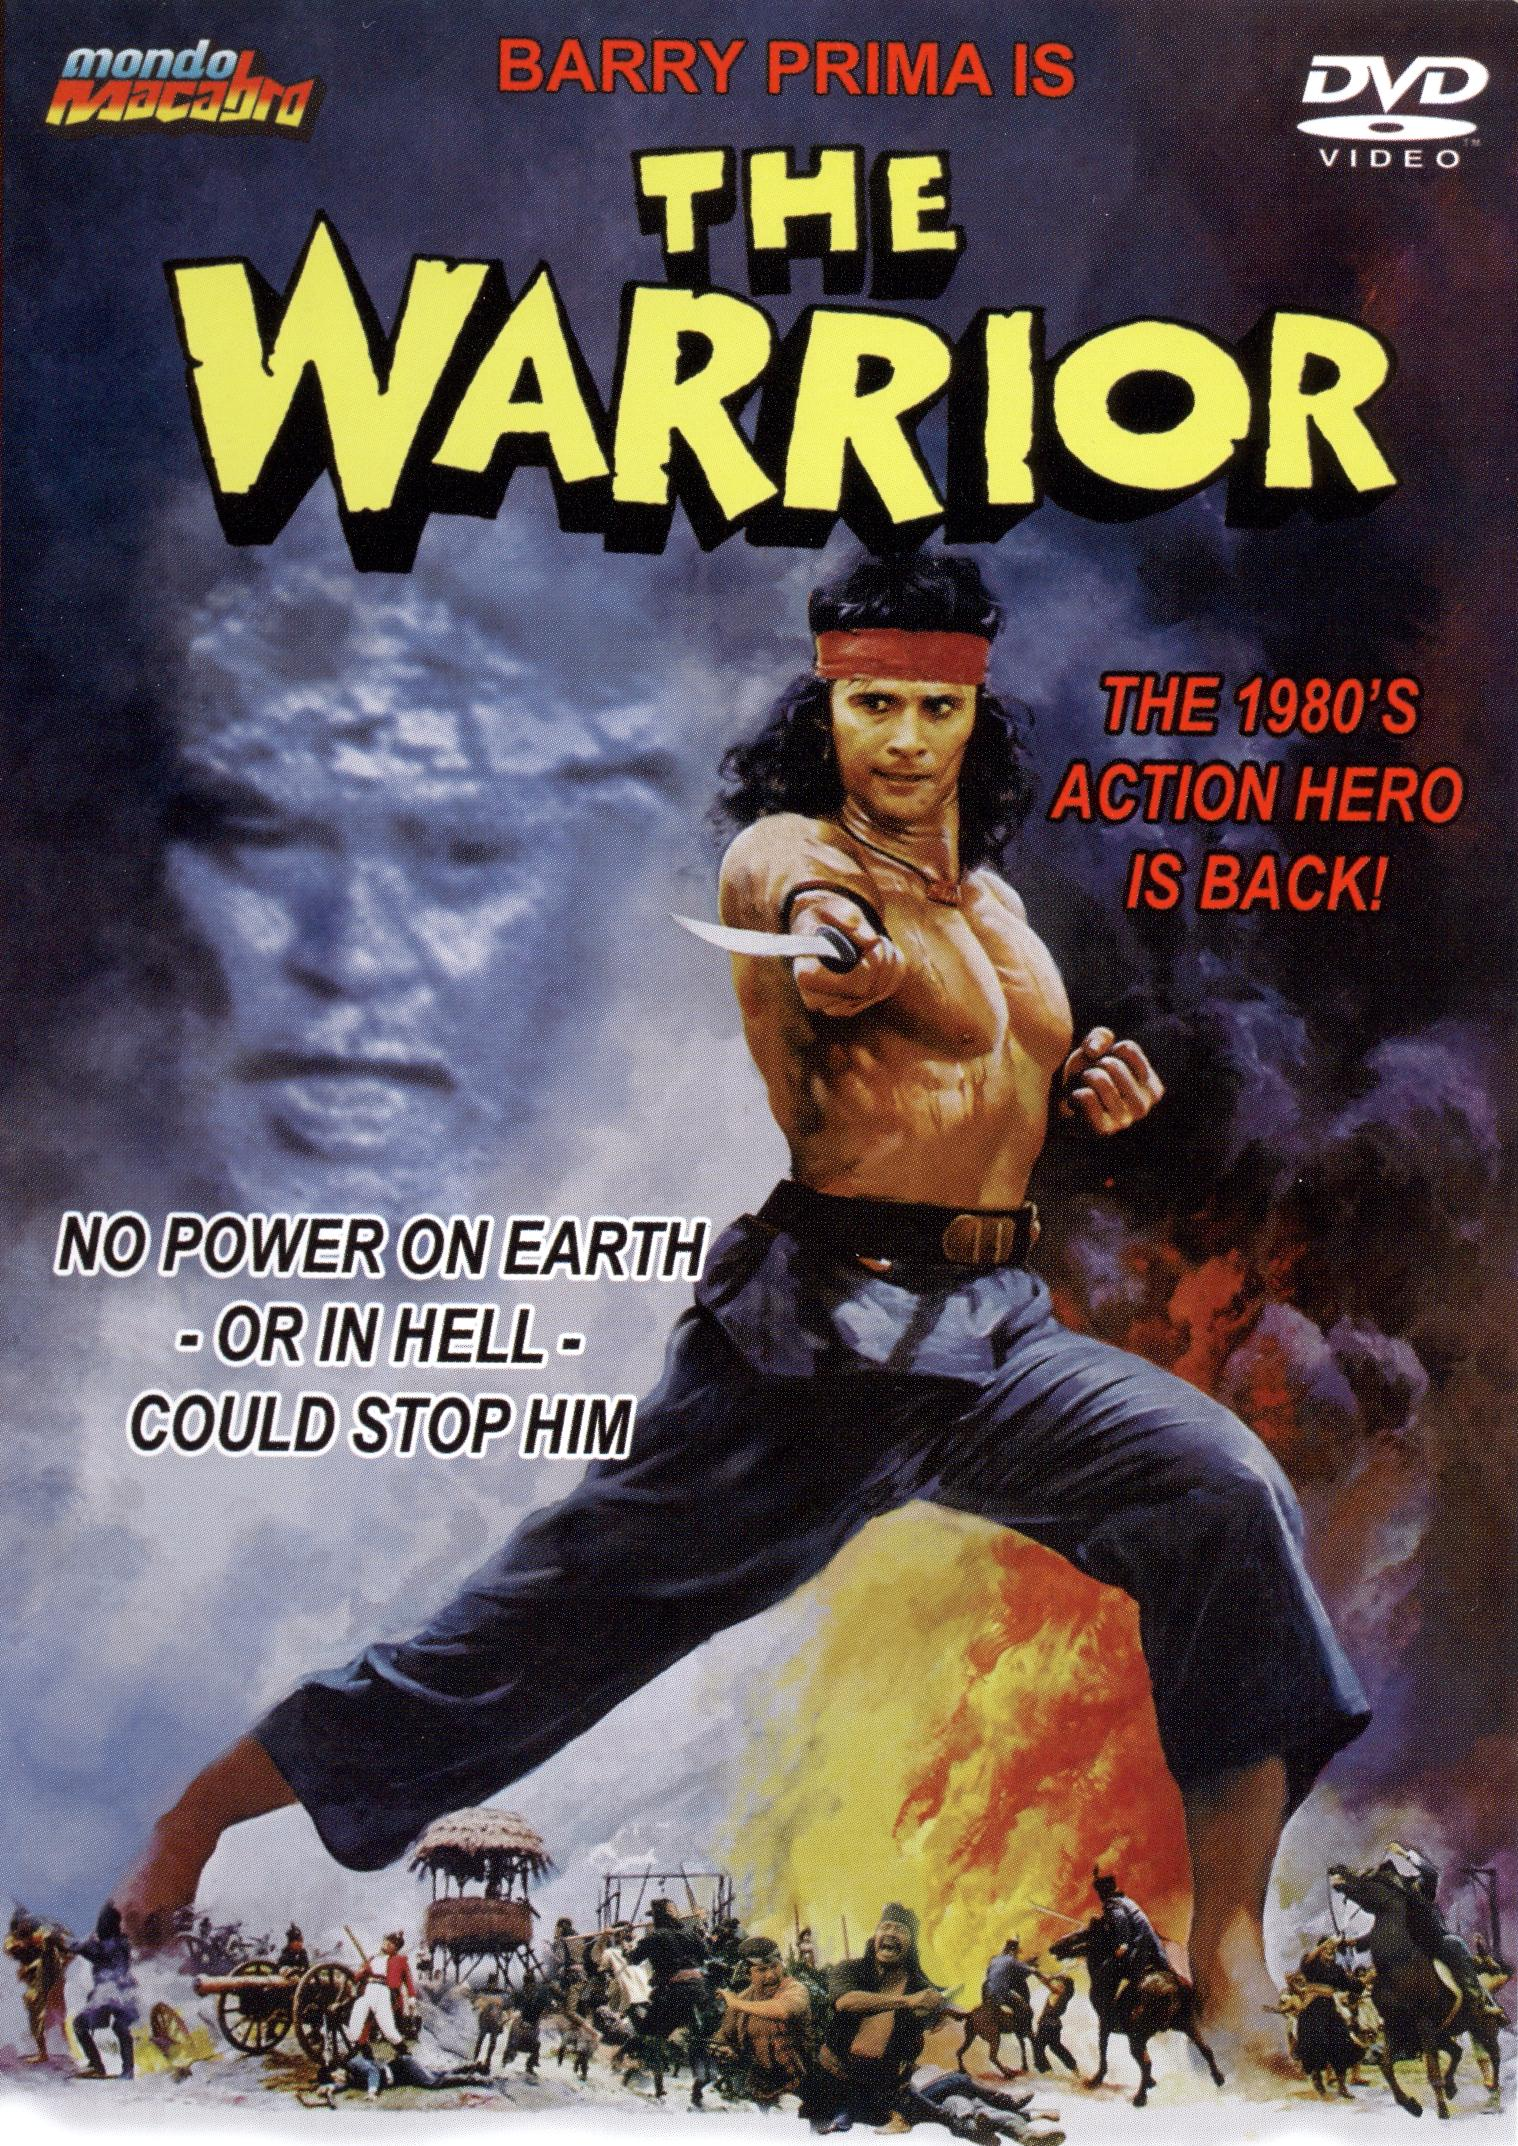 The Warrior (1981)